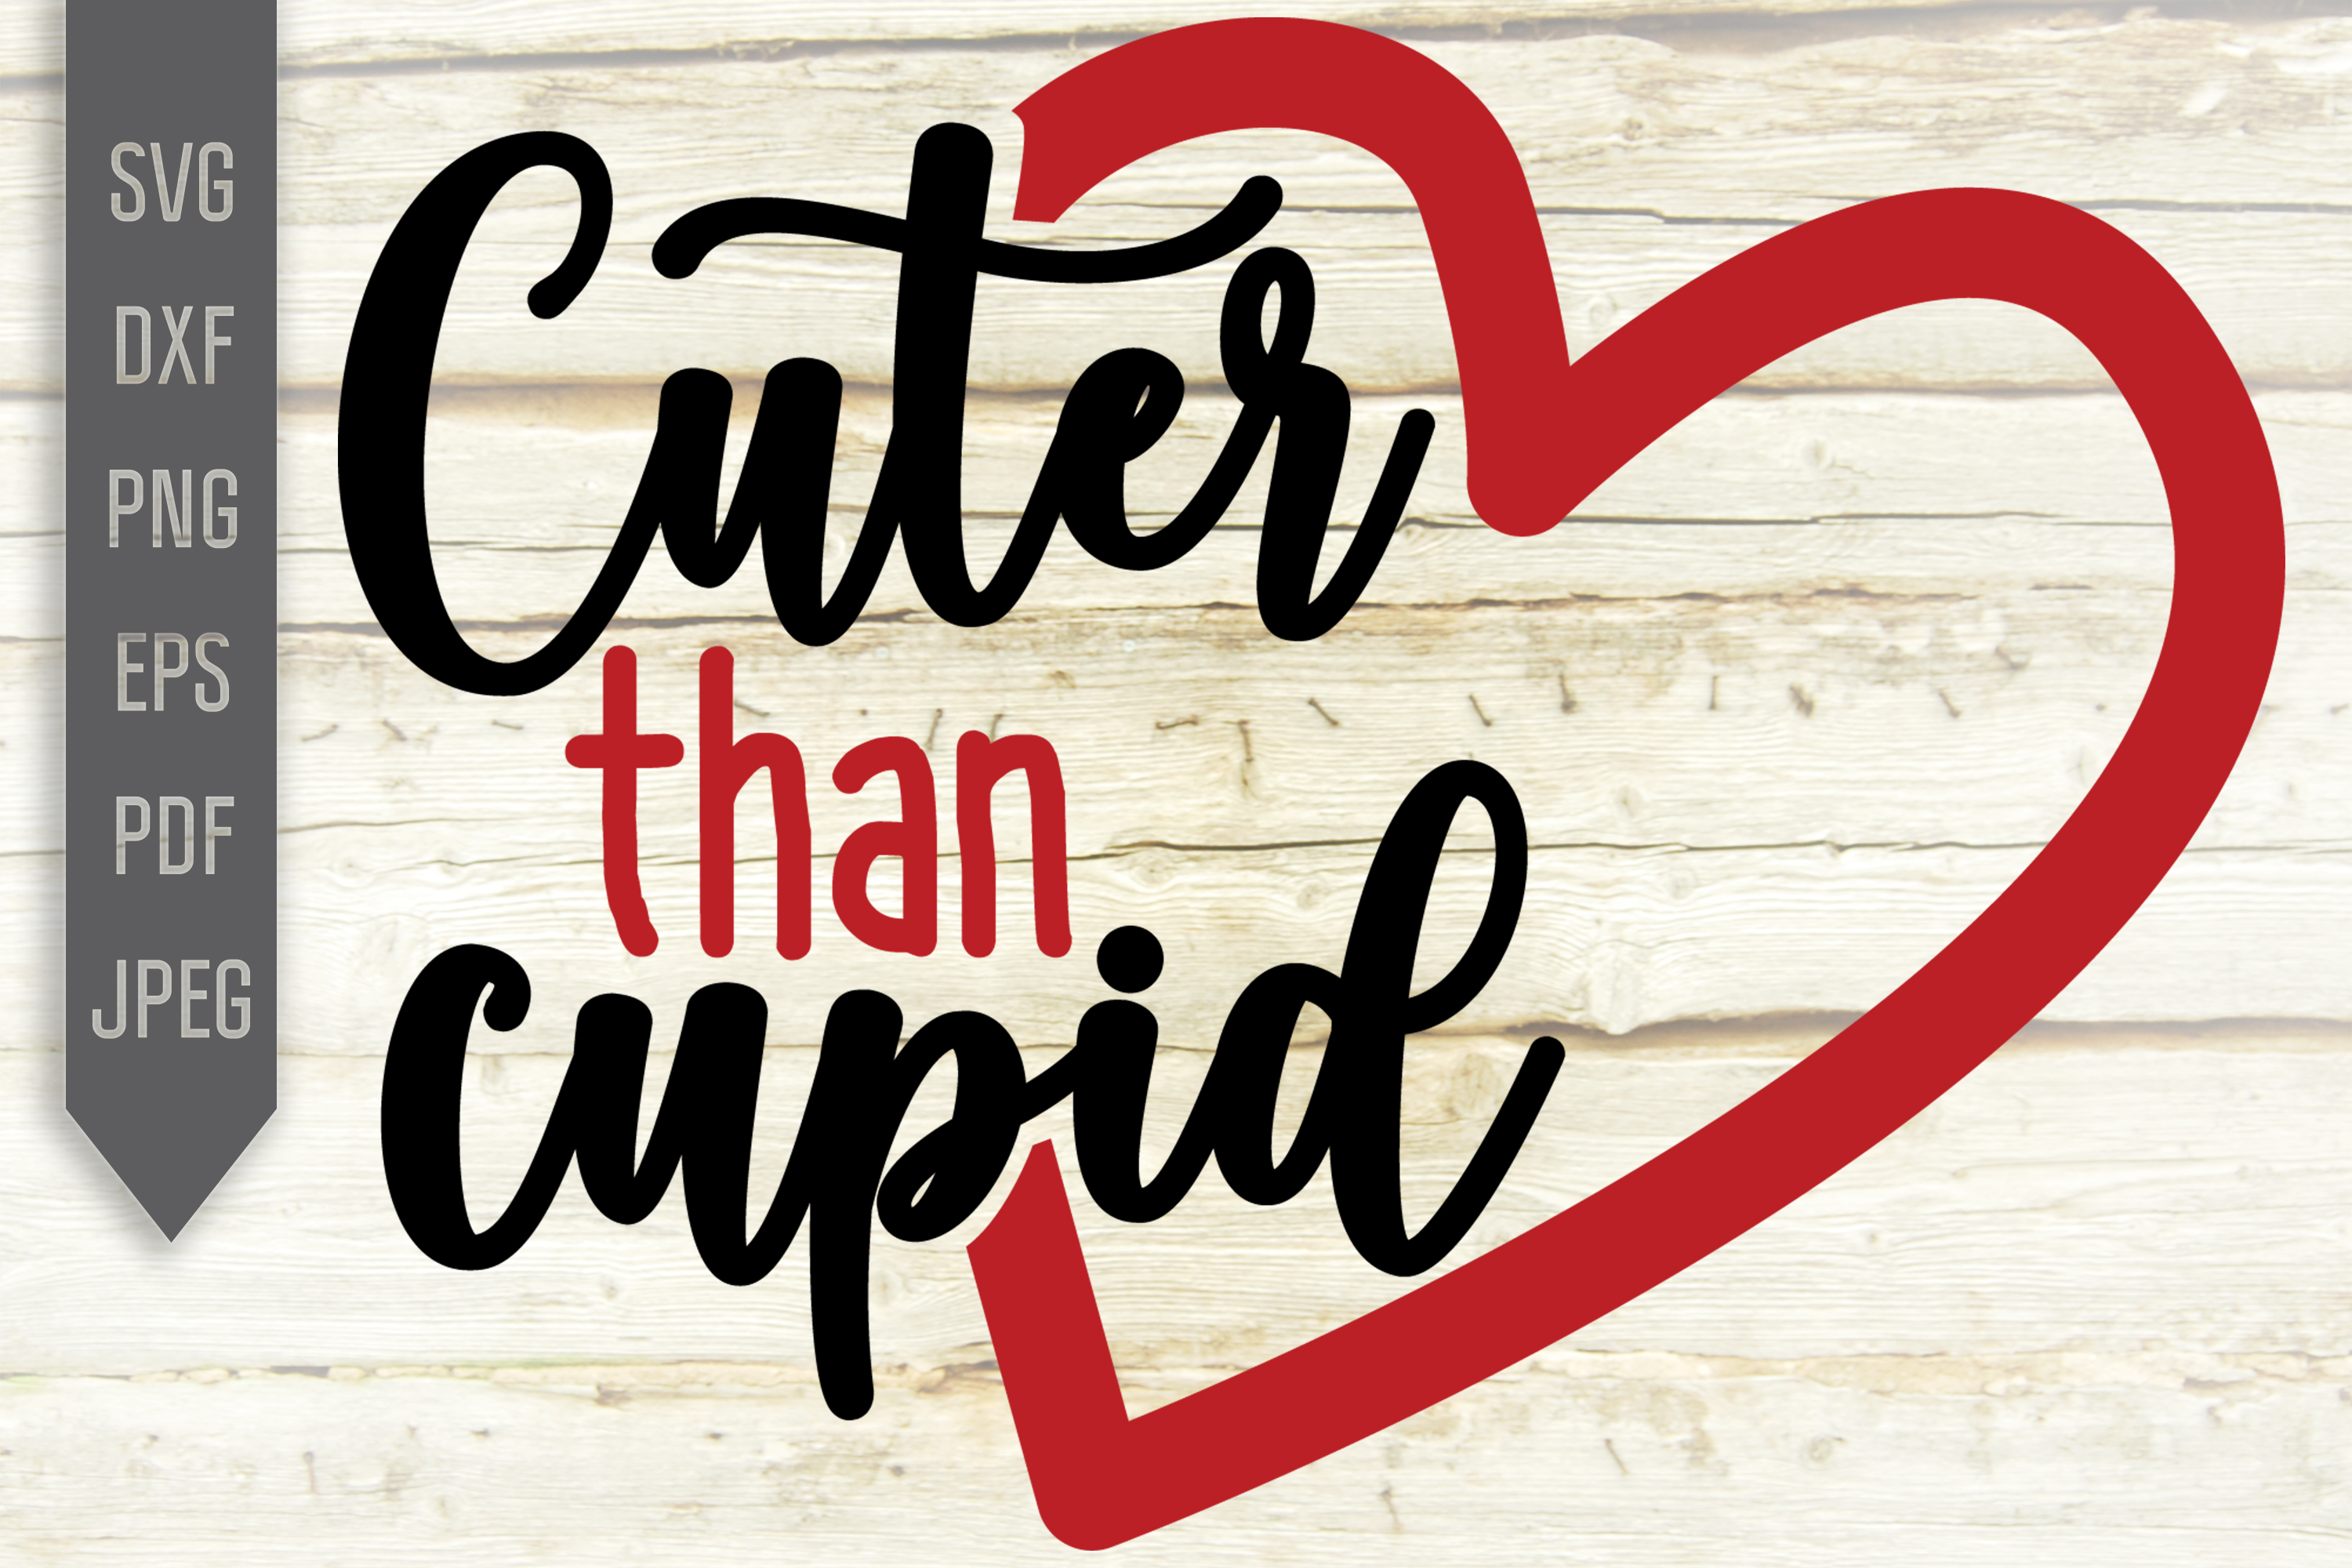 Download Free Cuter Than Cupid Svg Valentine S Day Graphic By Svglaboratory for Cricut Explore, Silhouette and other cutting machines.